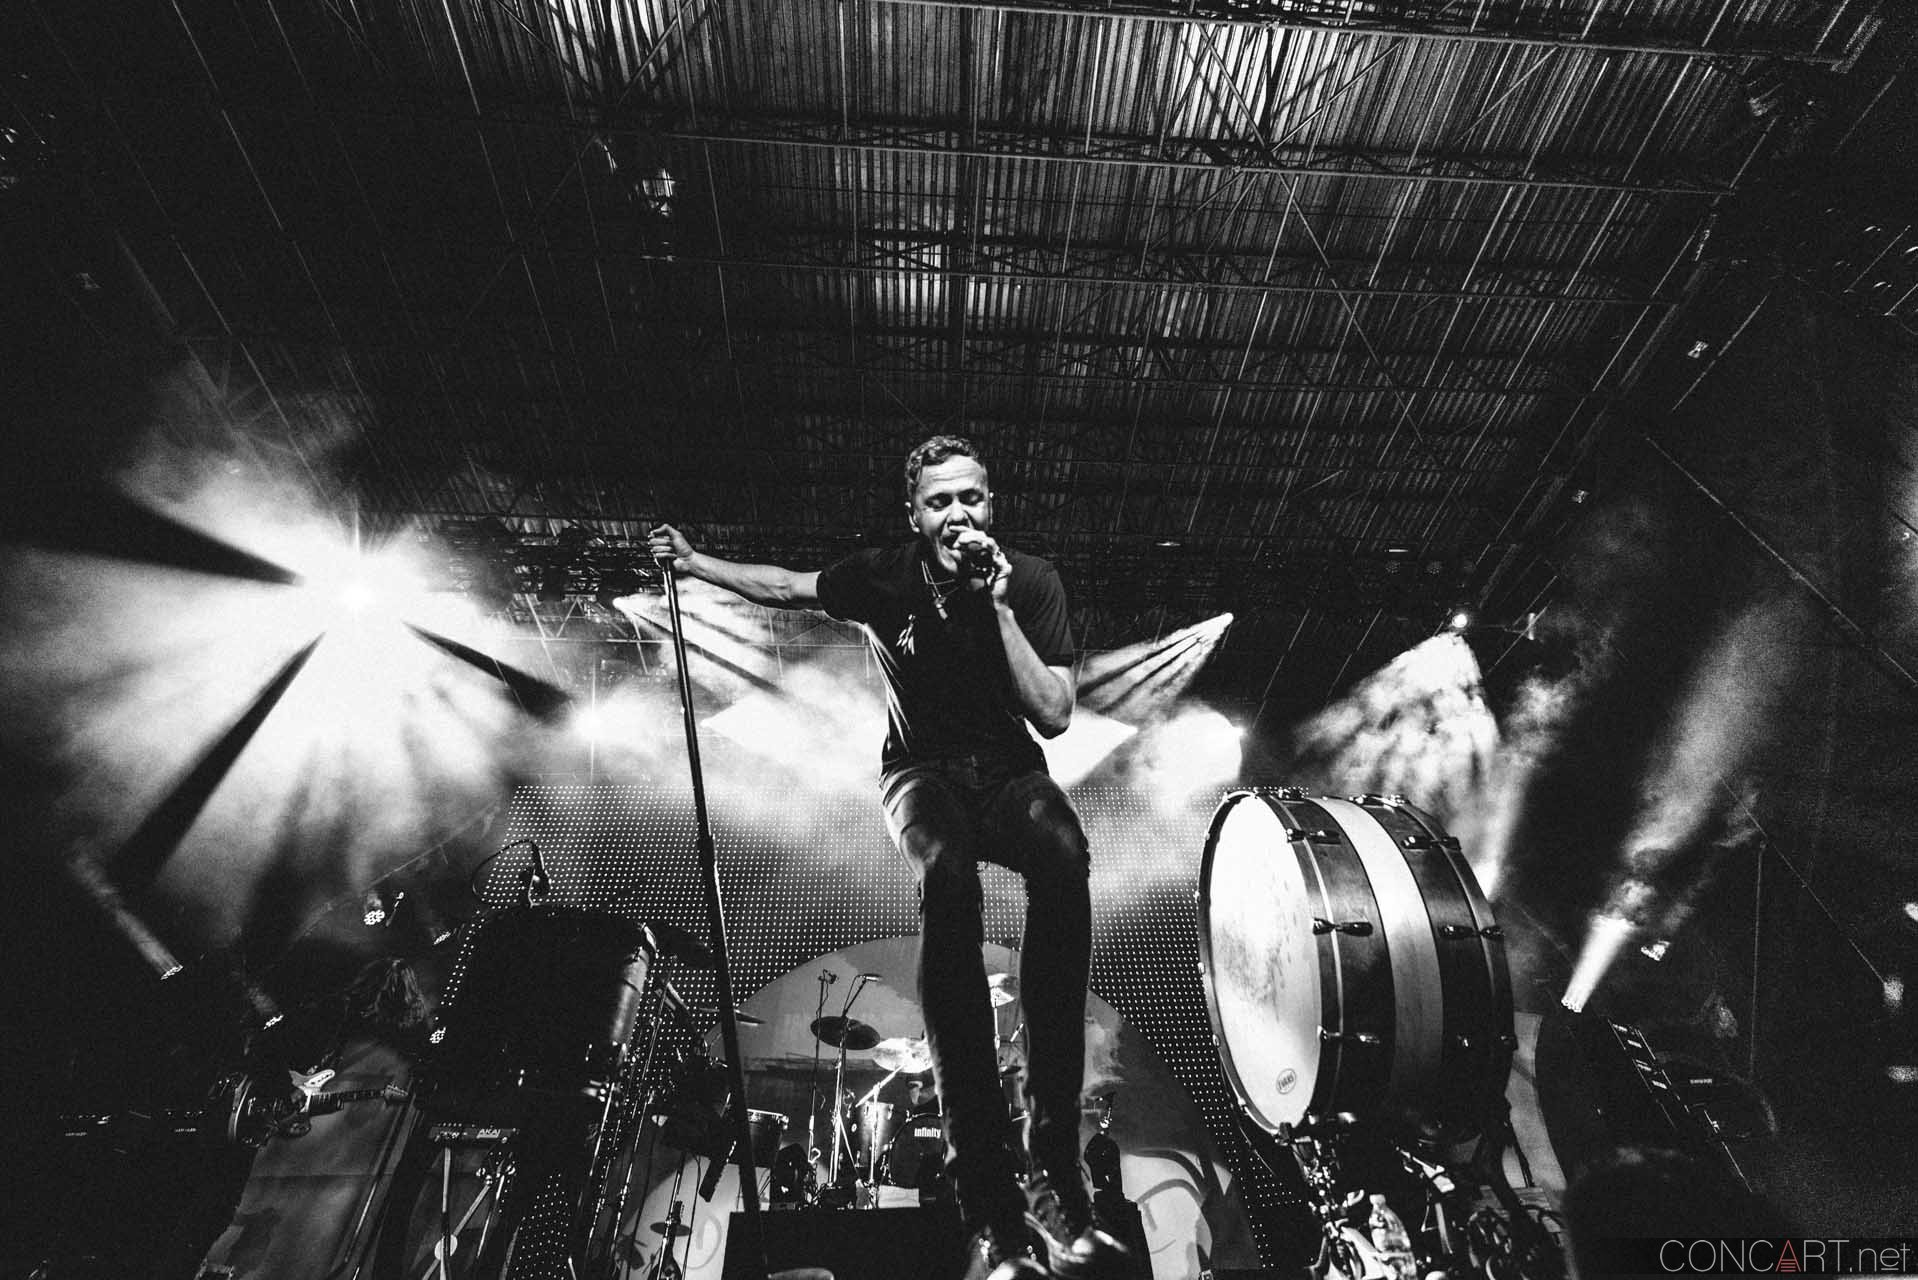 imagine_dragons_live_the_lawn_indianapolis_2013-35